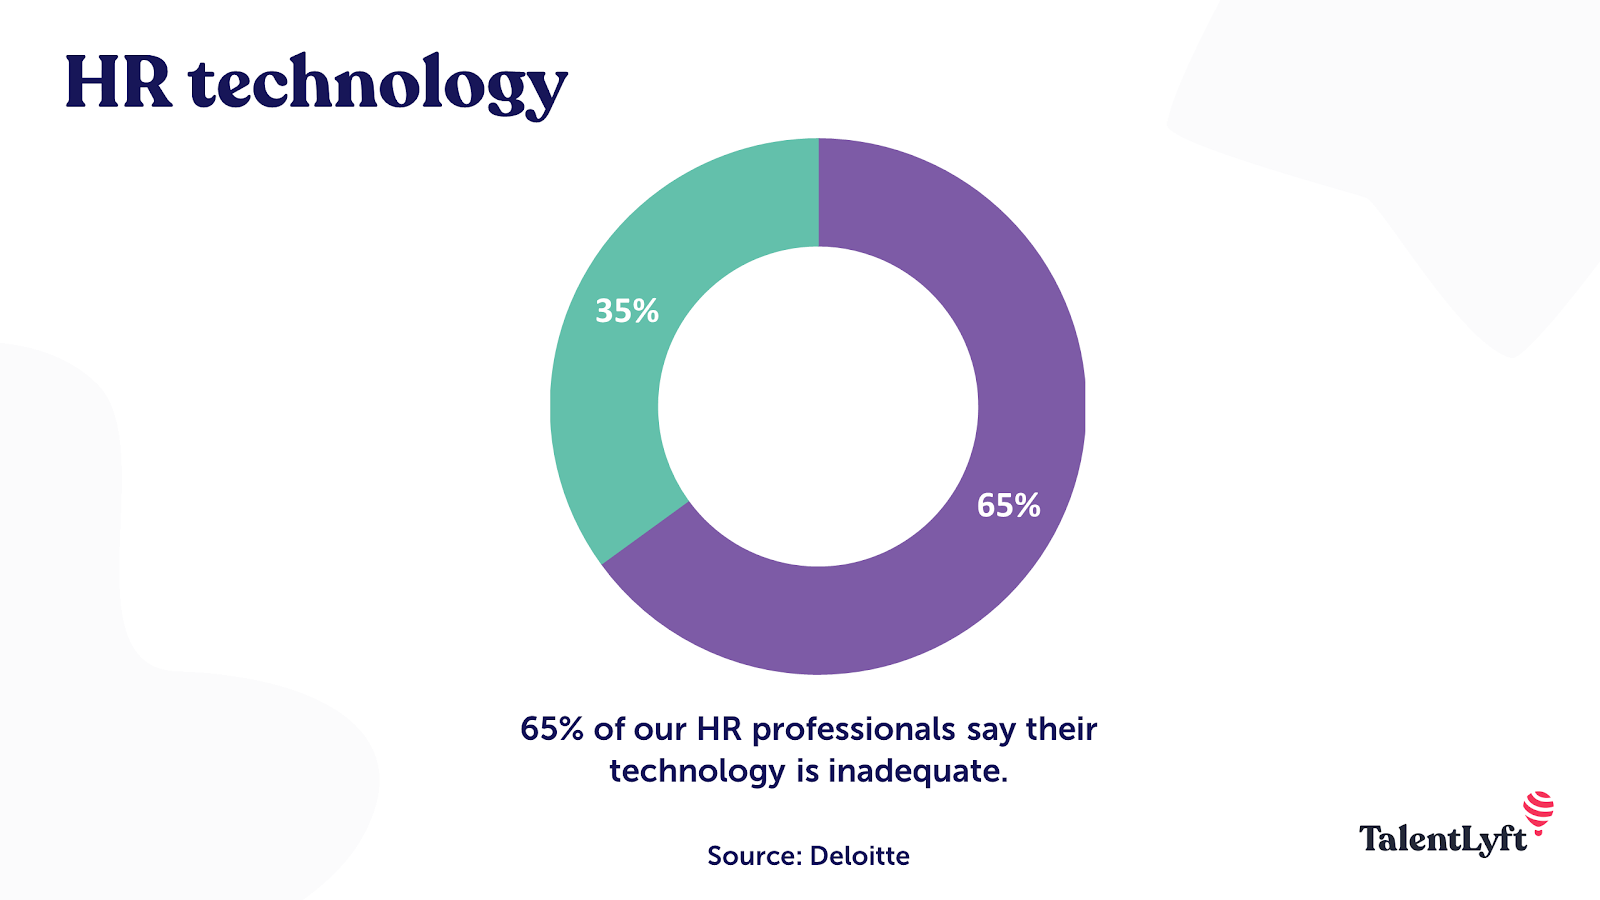 HR technology statistic